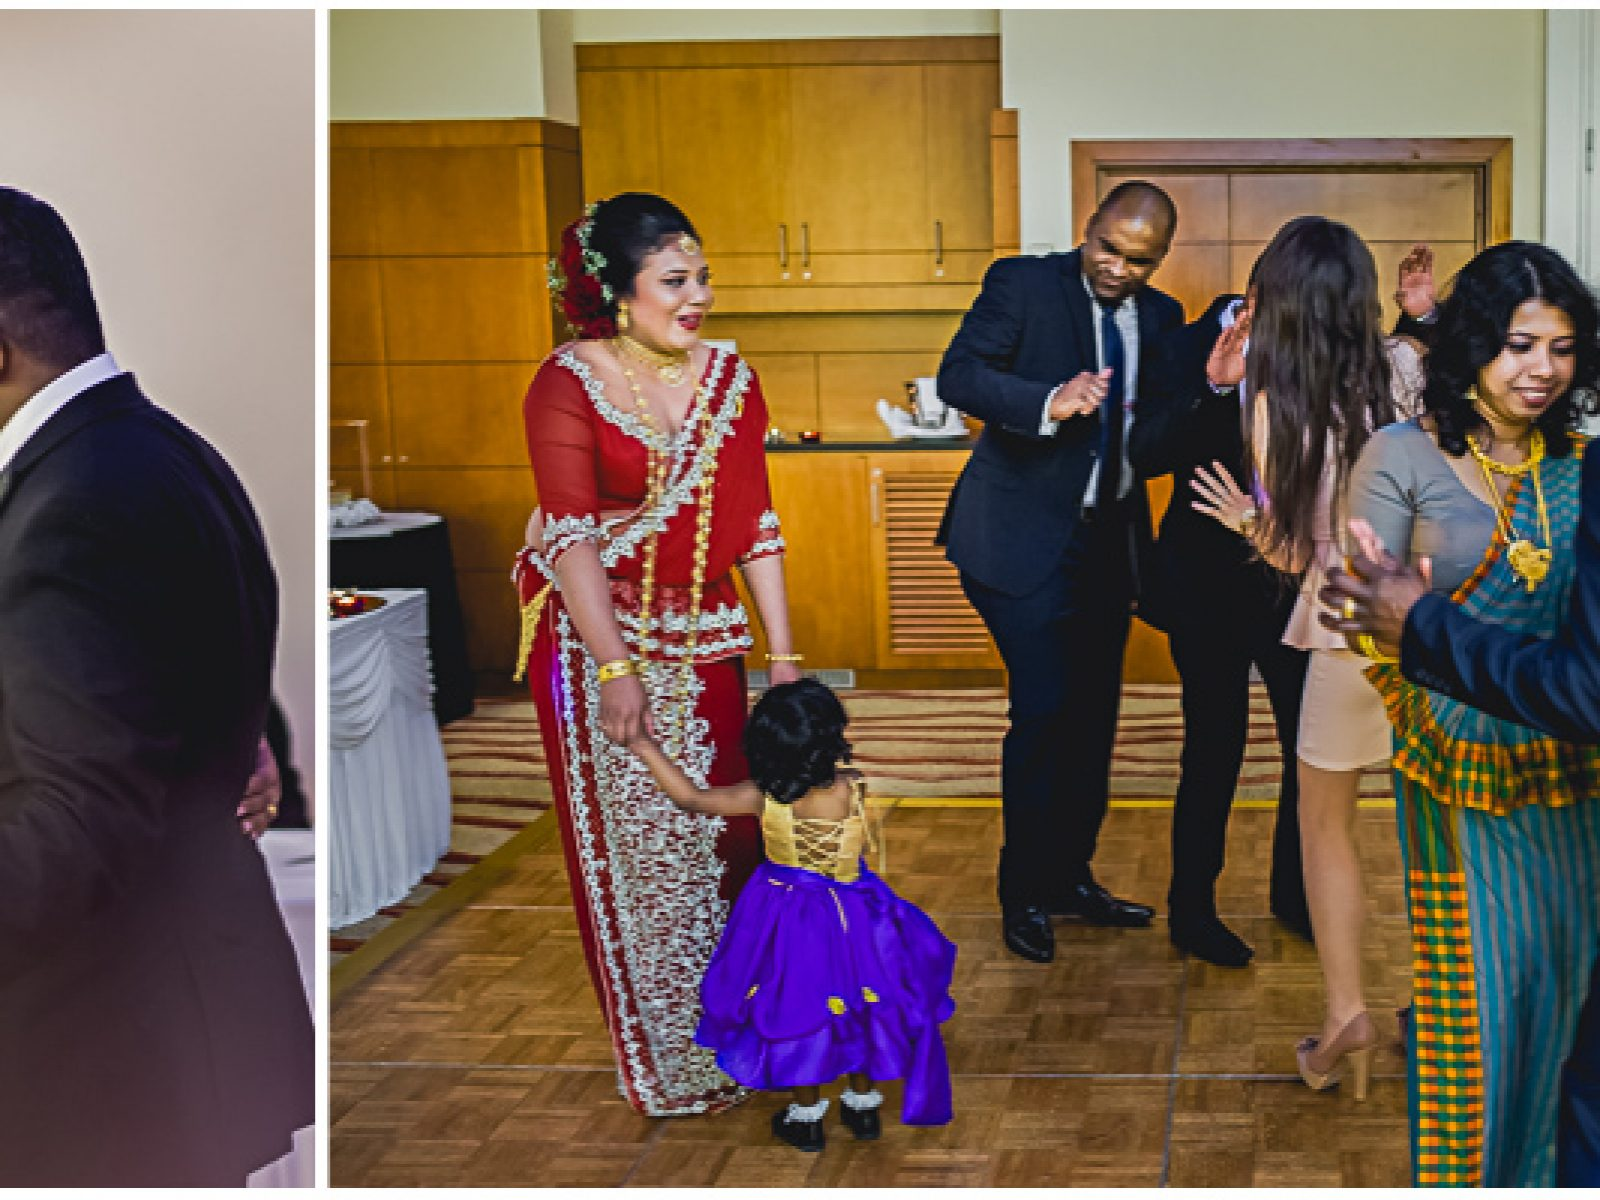 76a 1600x1200 - Darshani and Anthony - wedding photographer in London